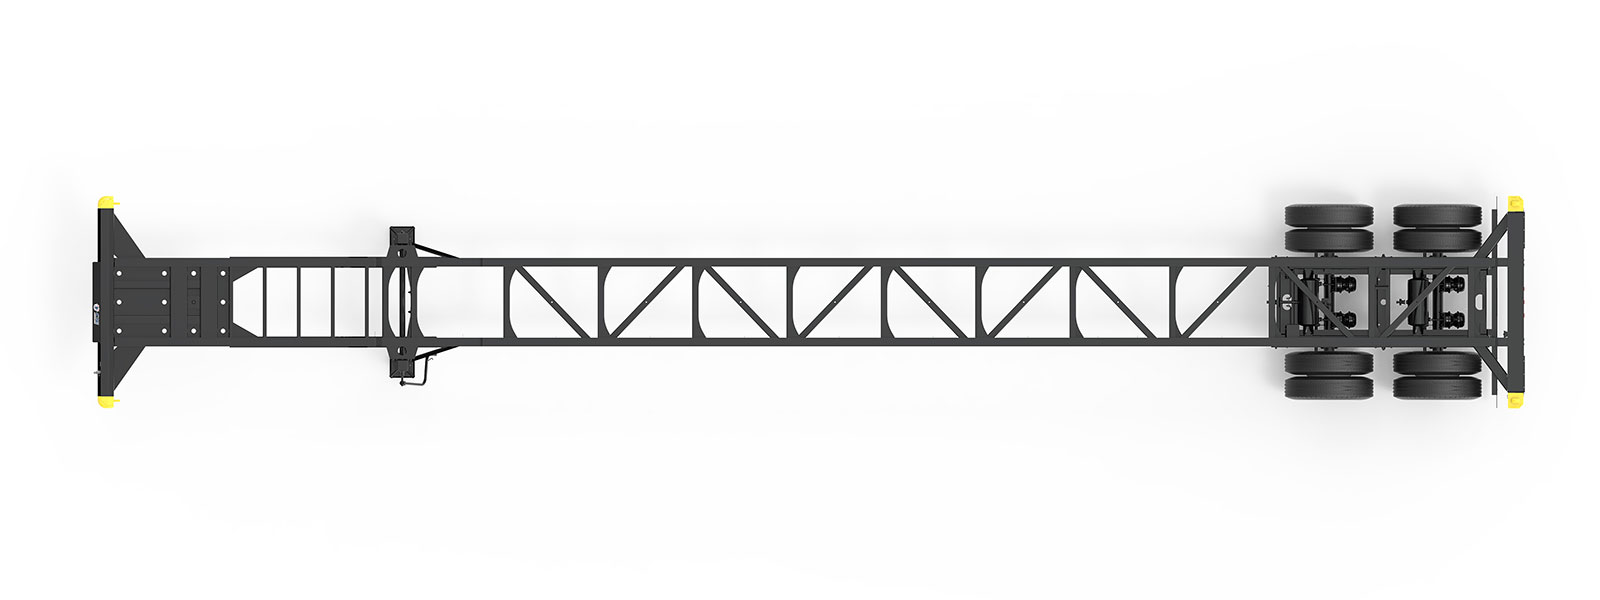 53' Gooseneck Tandem Container Chassis Orthographic Top View Final